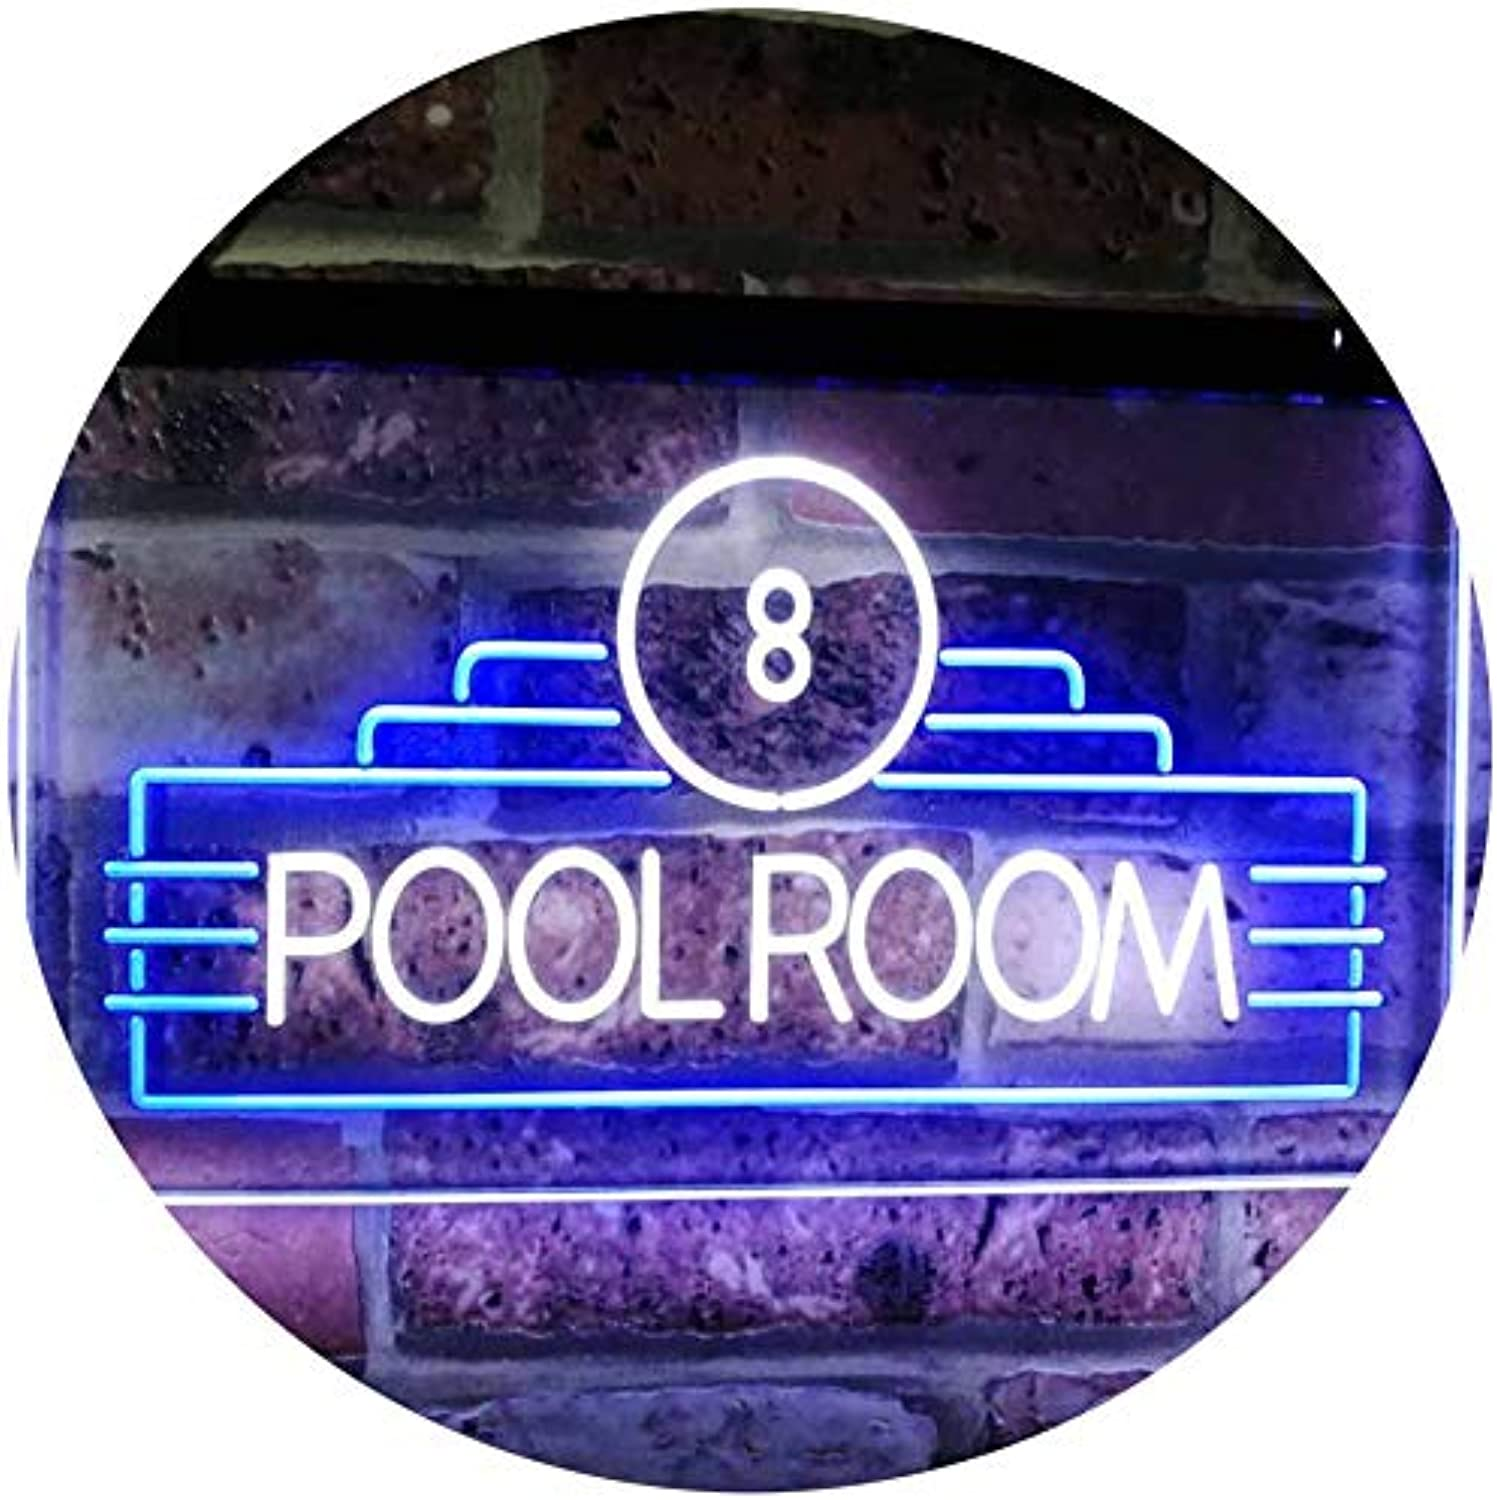 ADVPRO Pool Room 8 Ball Snooker Billiards Man Cave Dual Farbe LED Barlicht Neonlicht Lichtwerbung Neon Sign Weiß & Blau 400mm x 300mm st6s43-i2773-wb